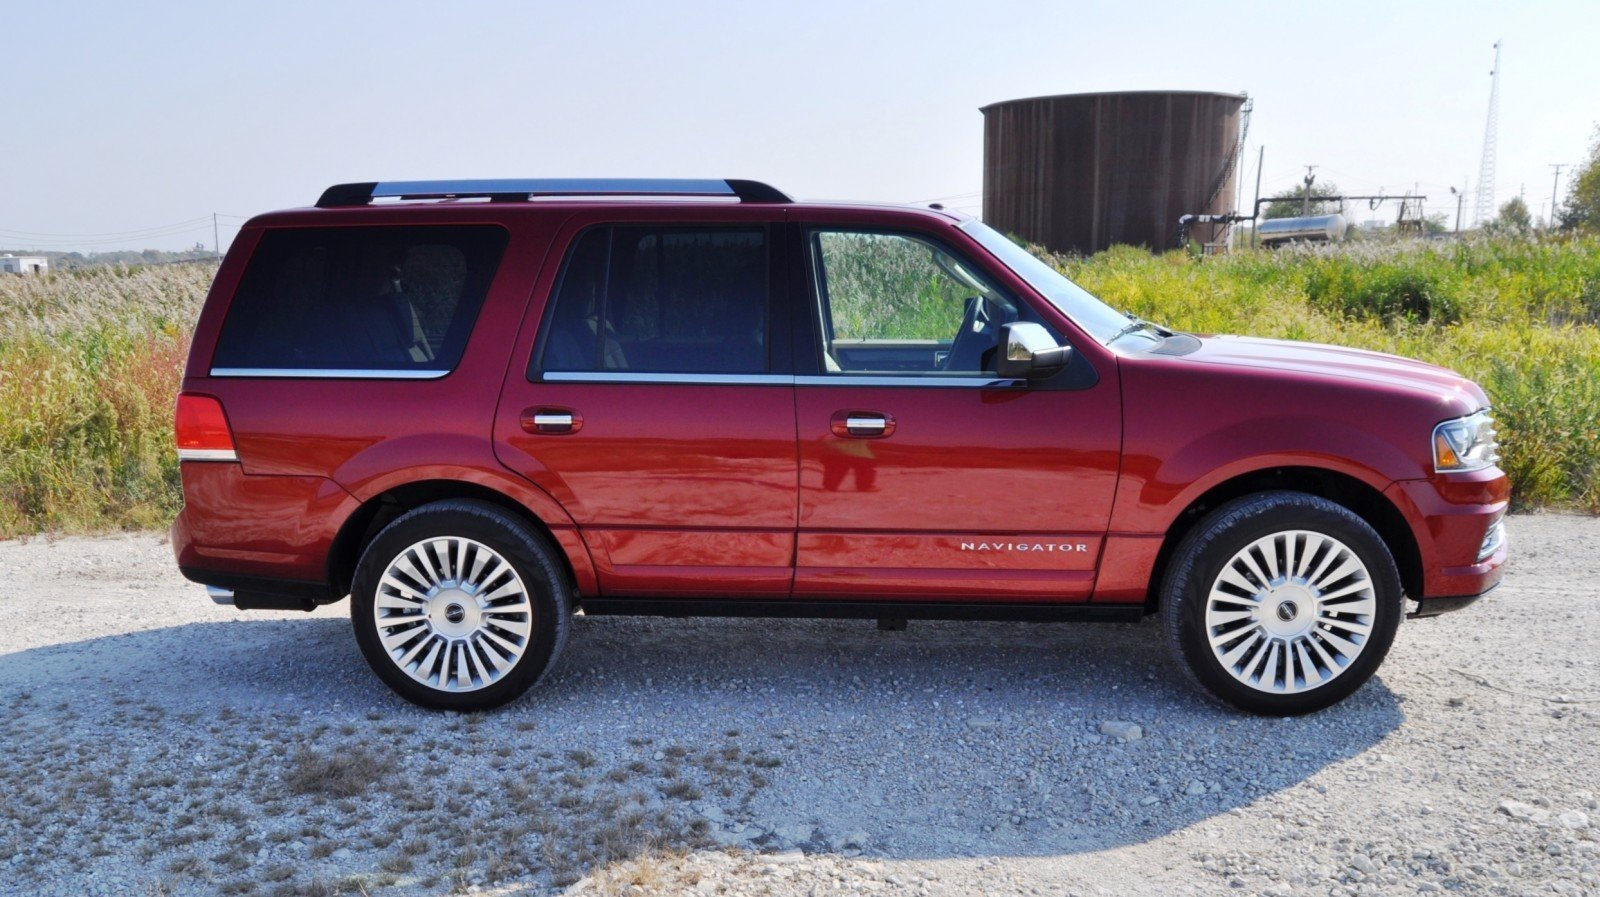 Road Test Review - 2015 Lincoln Navigator Is Totally Transformed By MR Shocks and EcoBoost 12